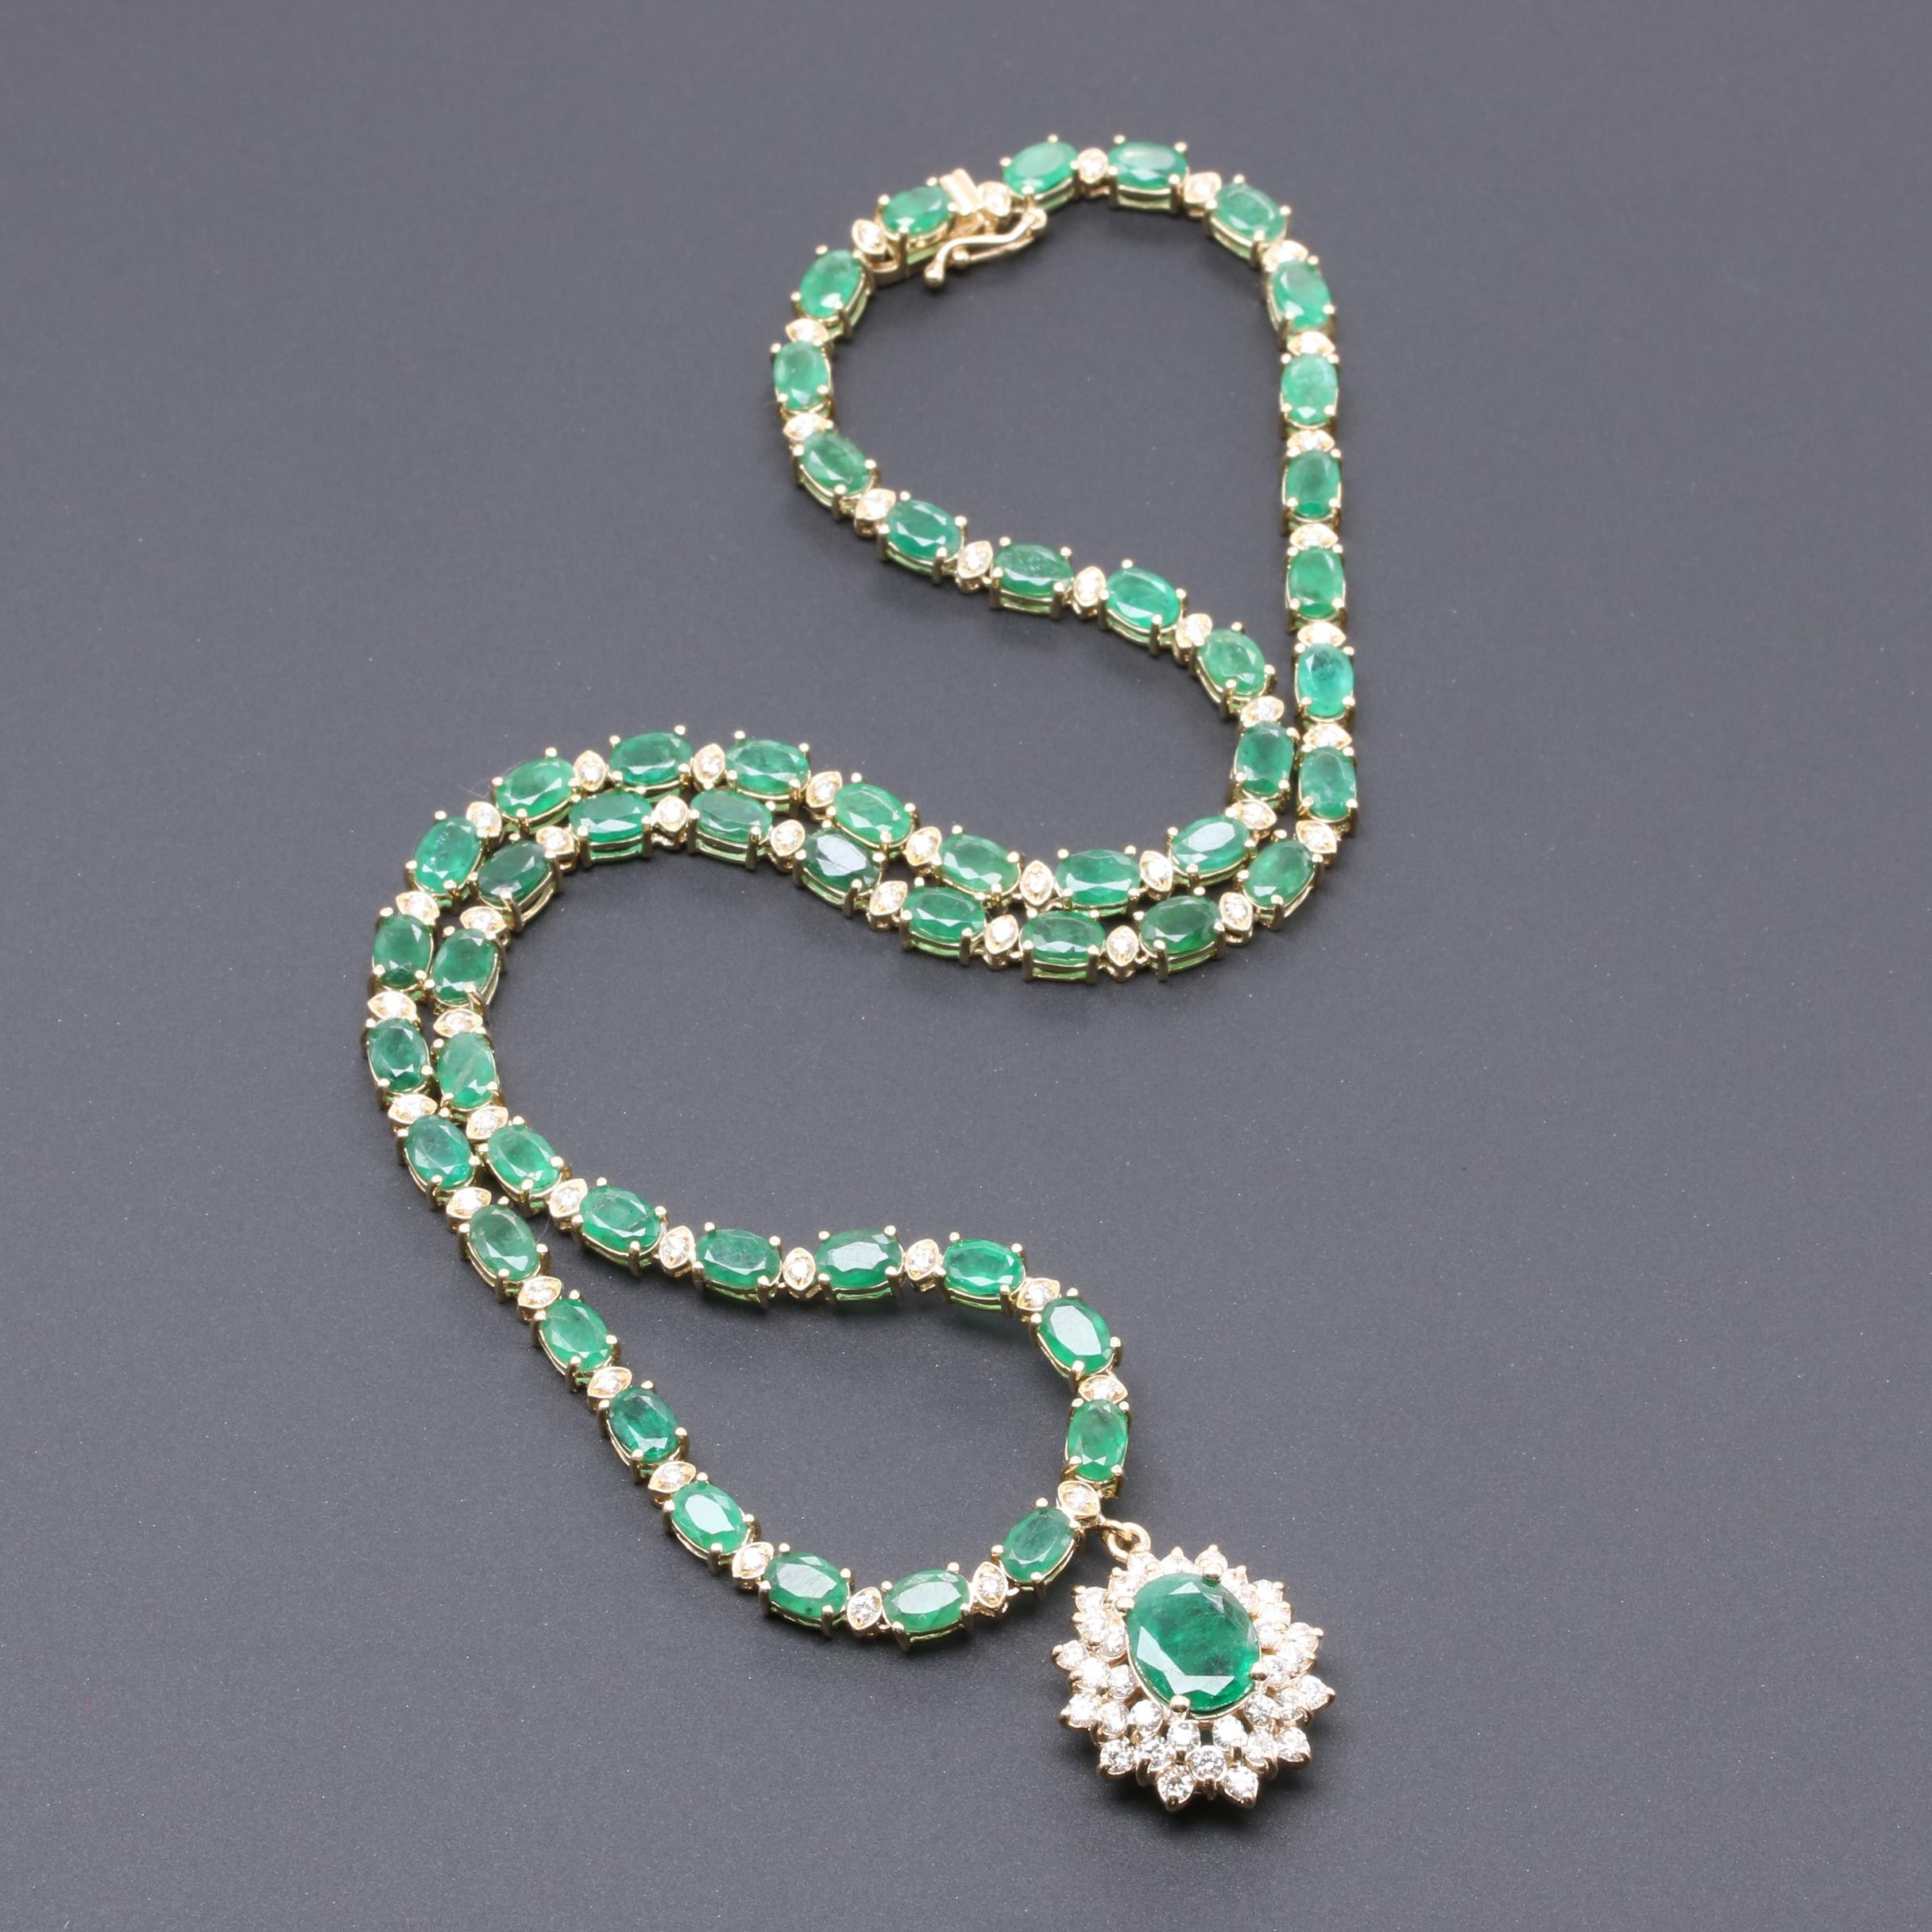 14K Yellow Gold Emerald and 2.10 CTW Diamond Necklace with 1.58 CT Emerald